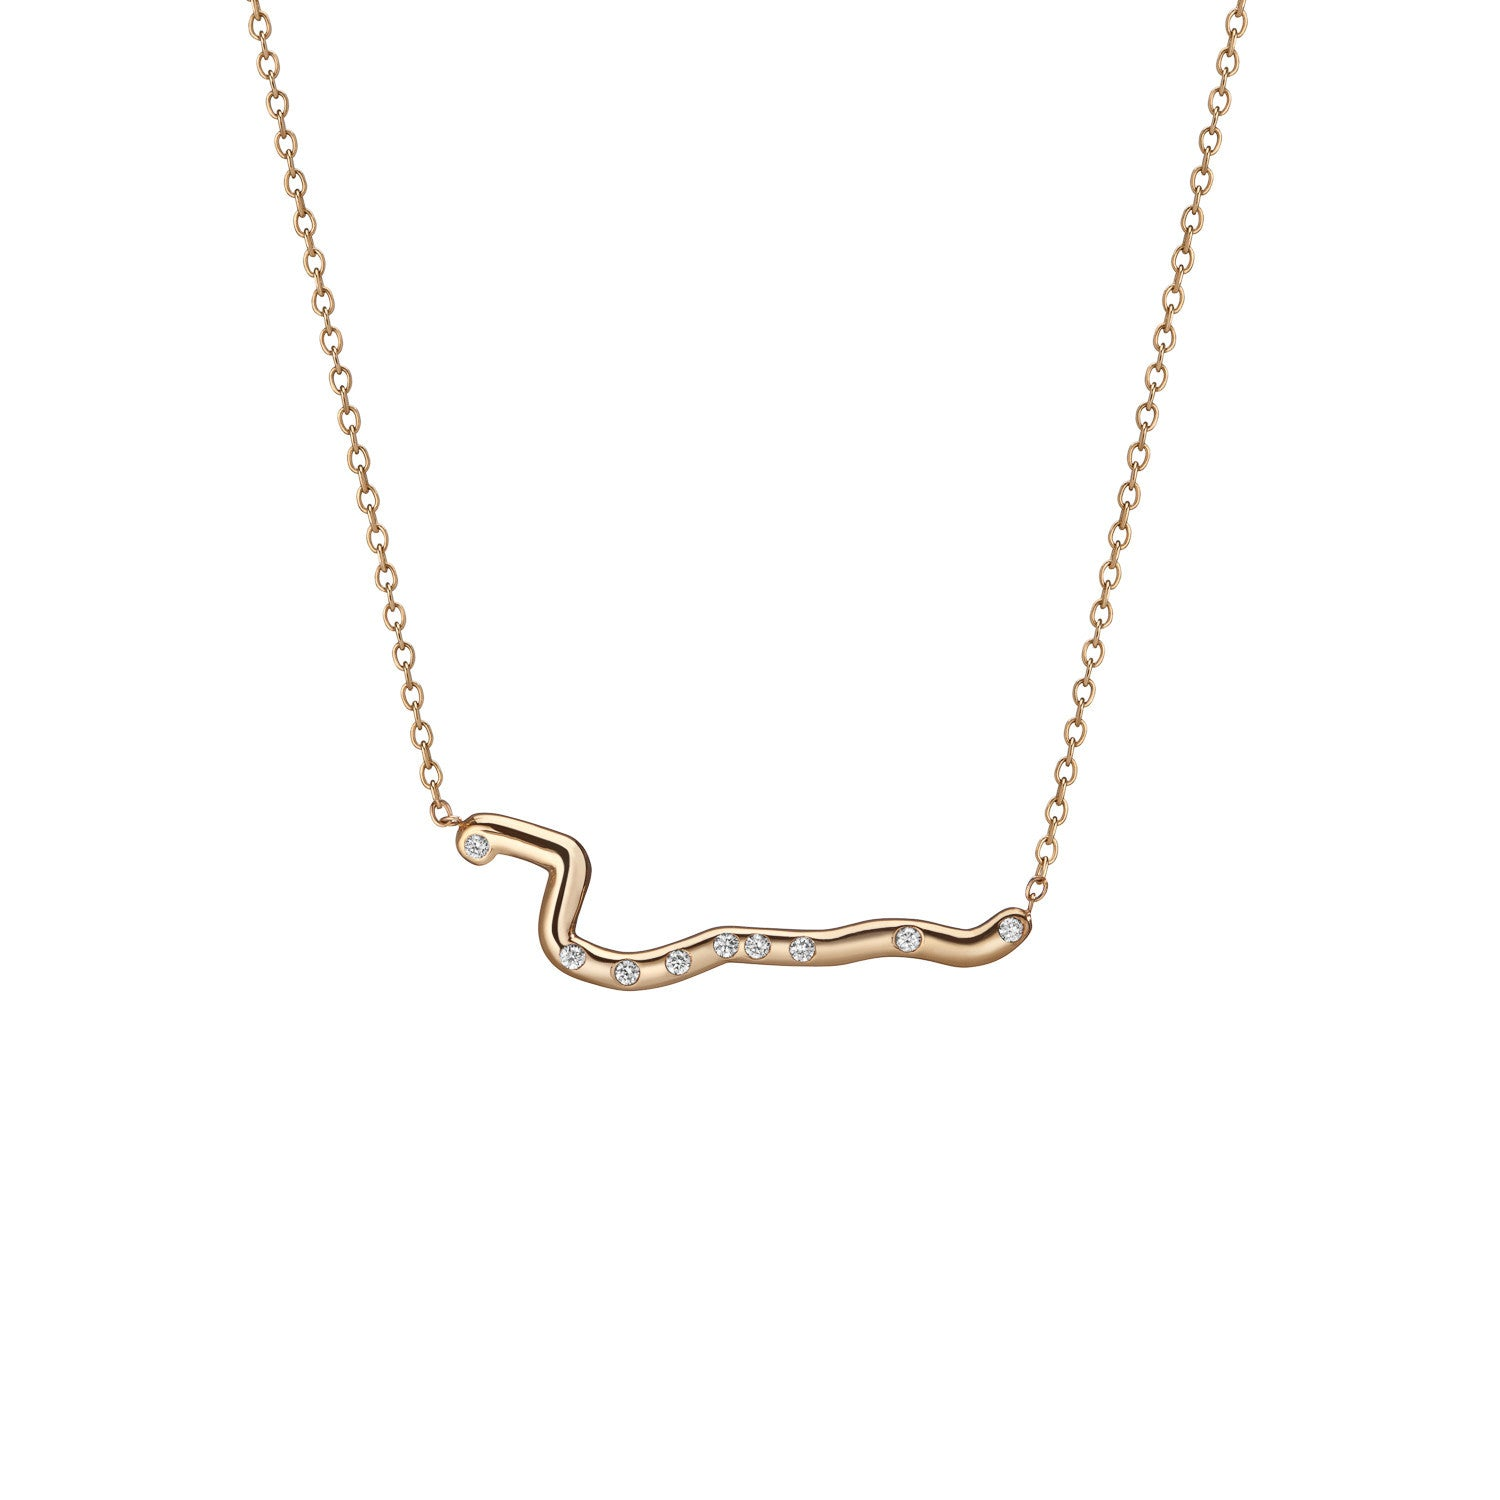 14K Gold Subway Necklace - Harlem to South Ferry